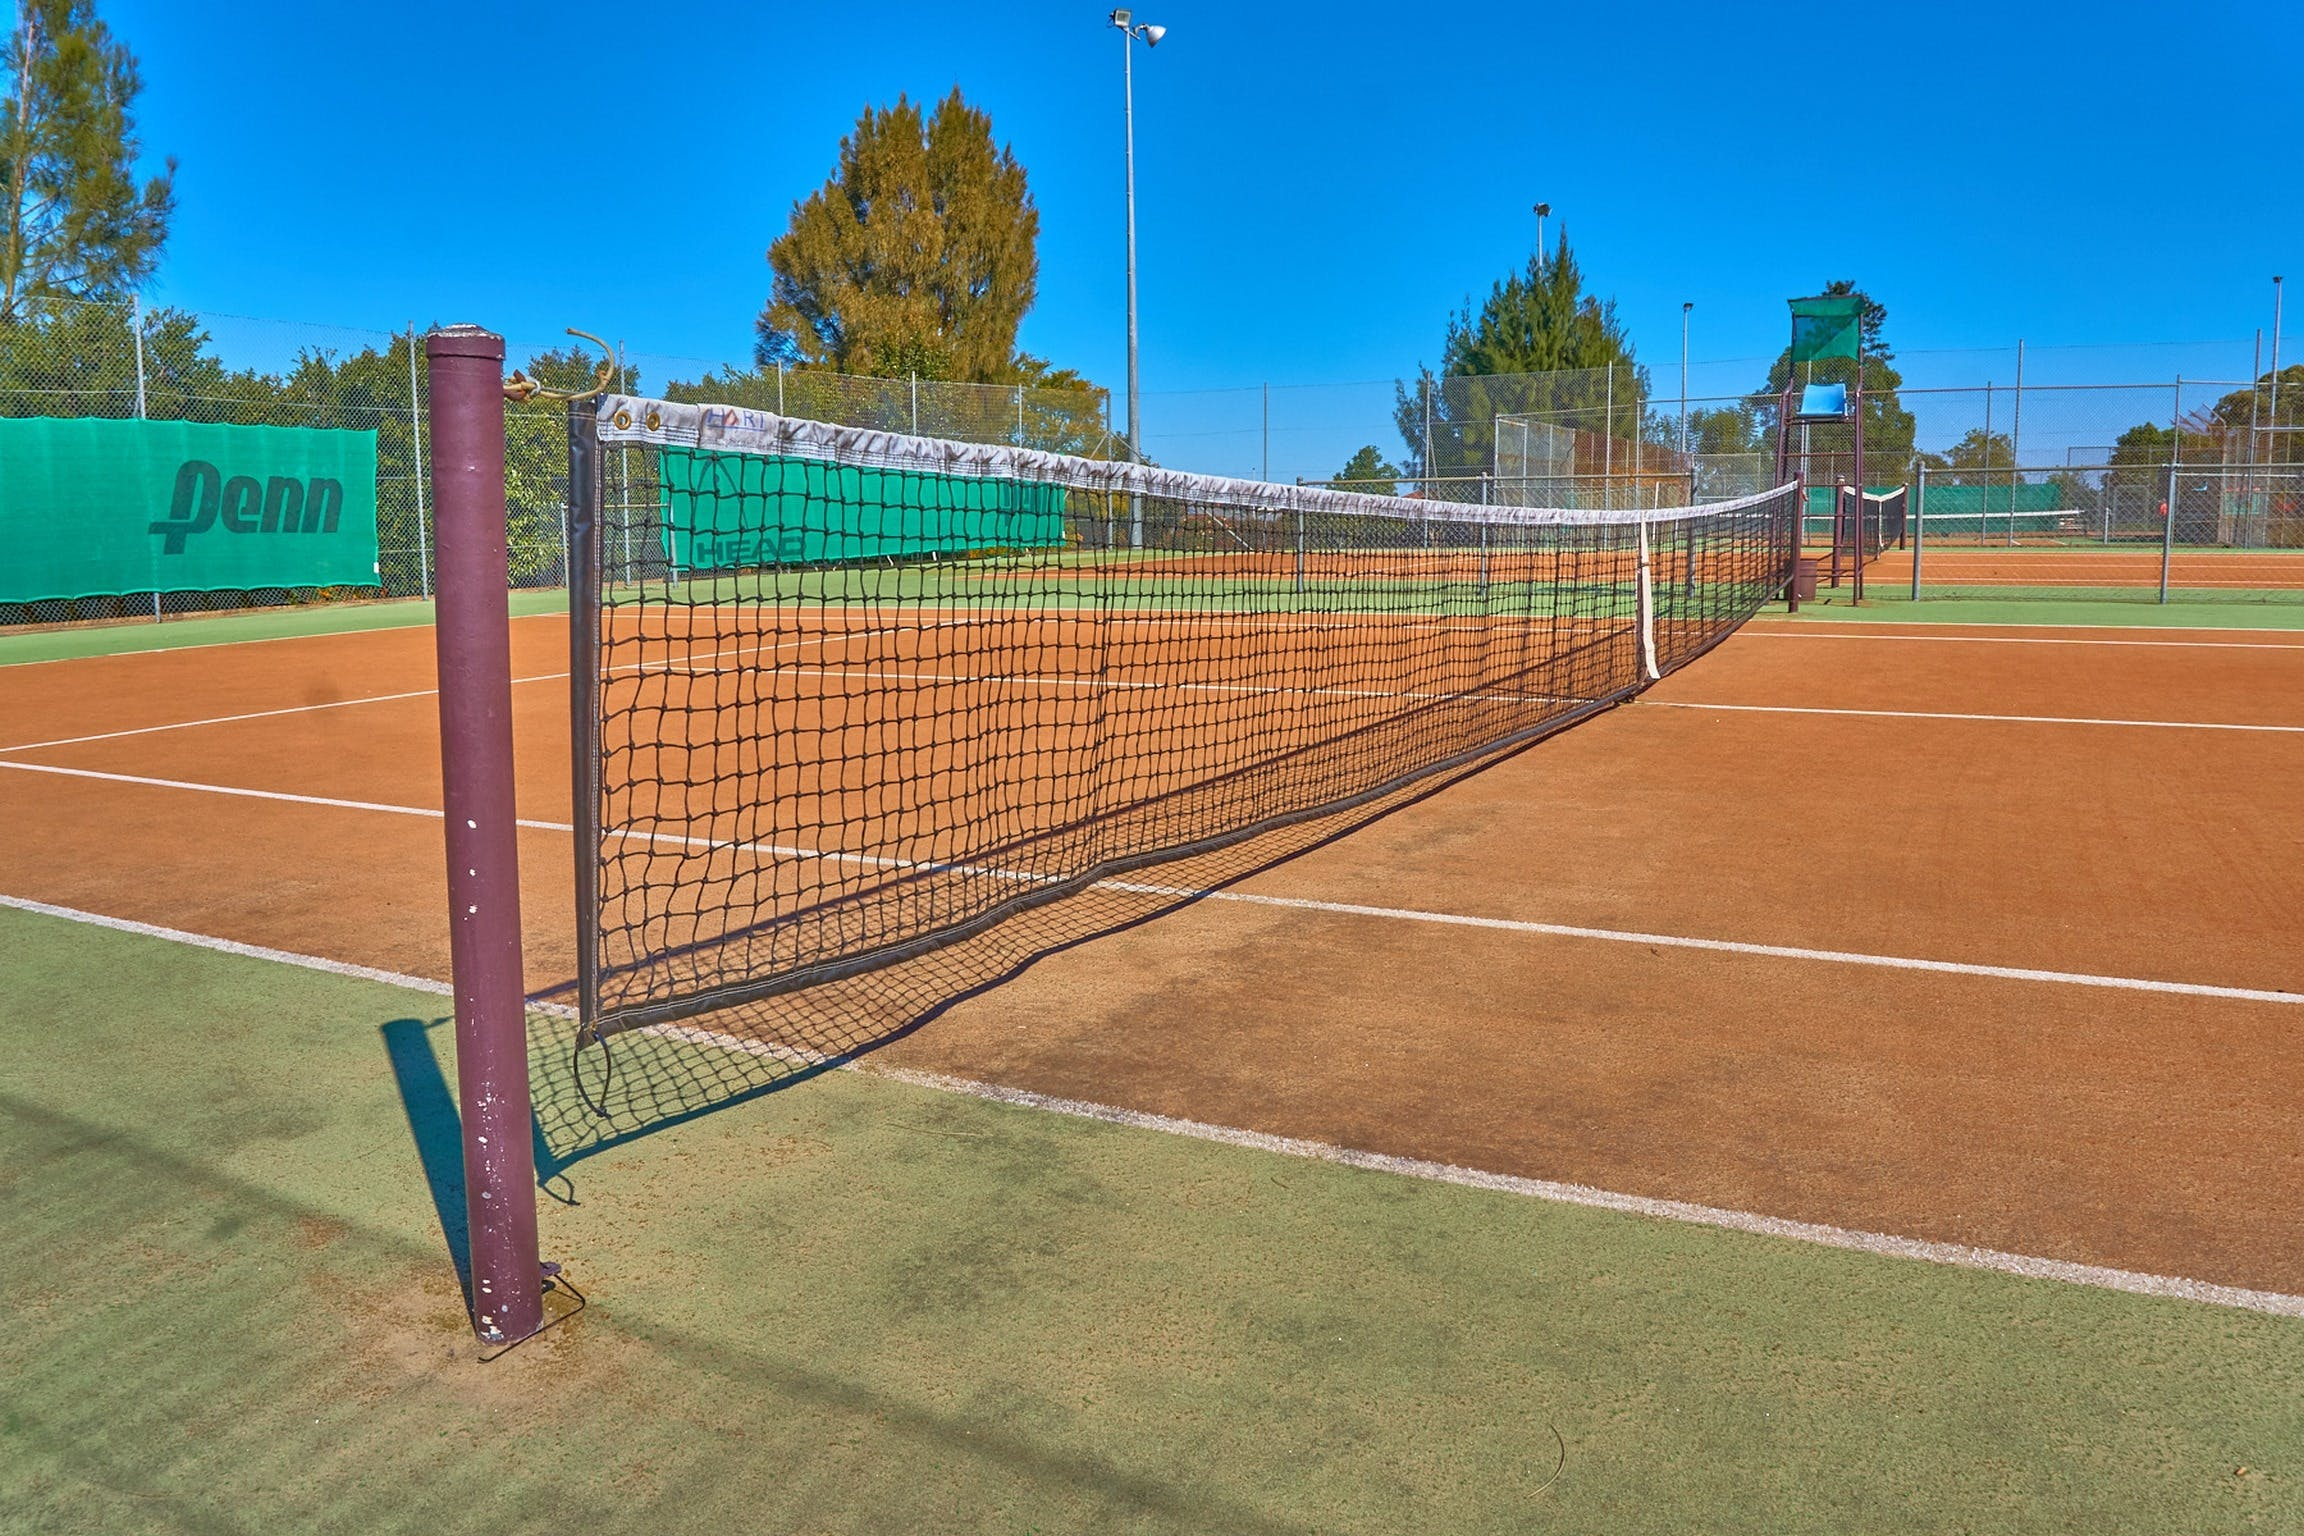 Raworth Tennis Centre - Palm Beach Accommodation